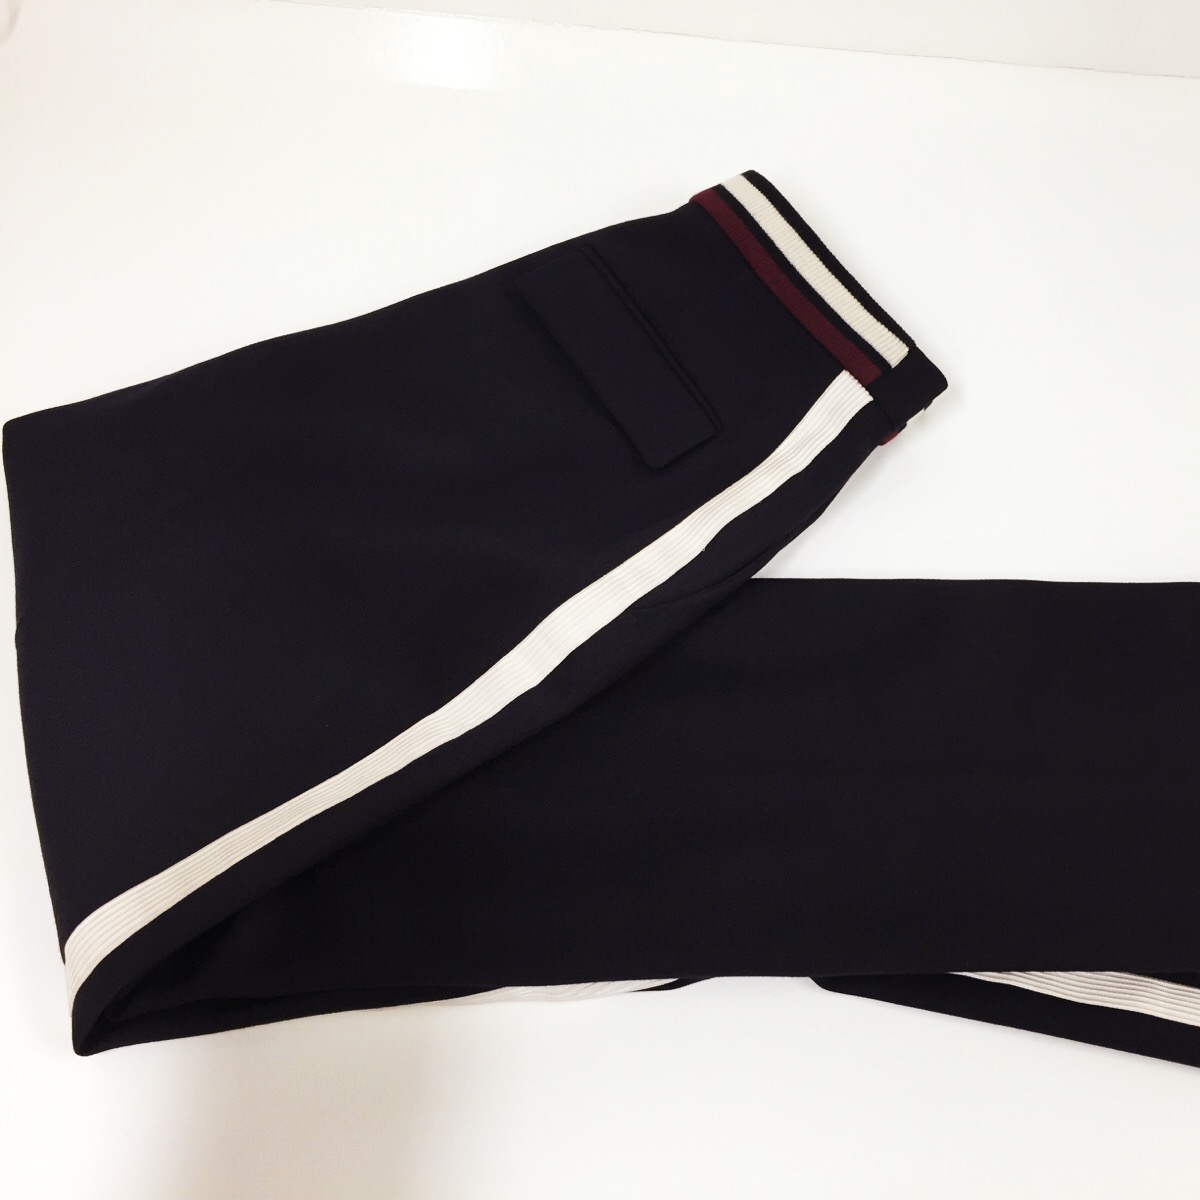 We have to take in the waistband of these Stella McCartney trousers...